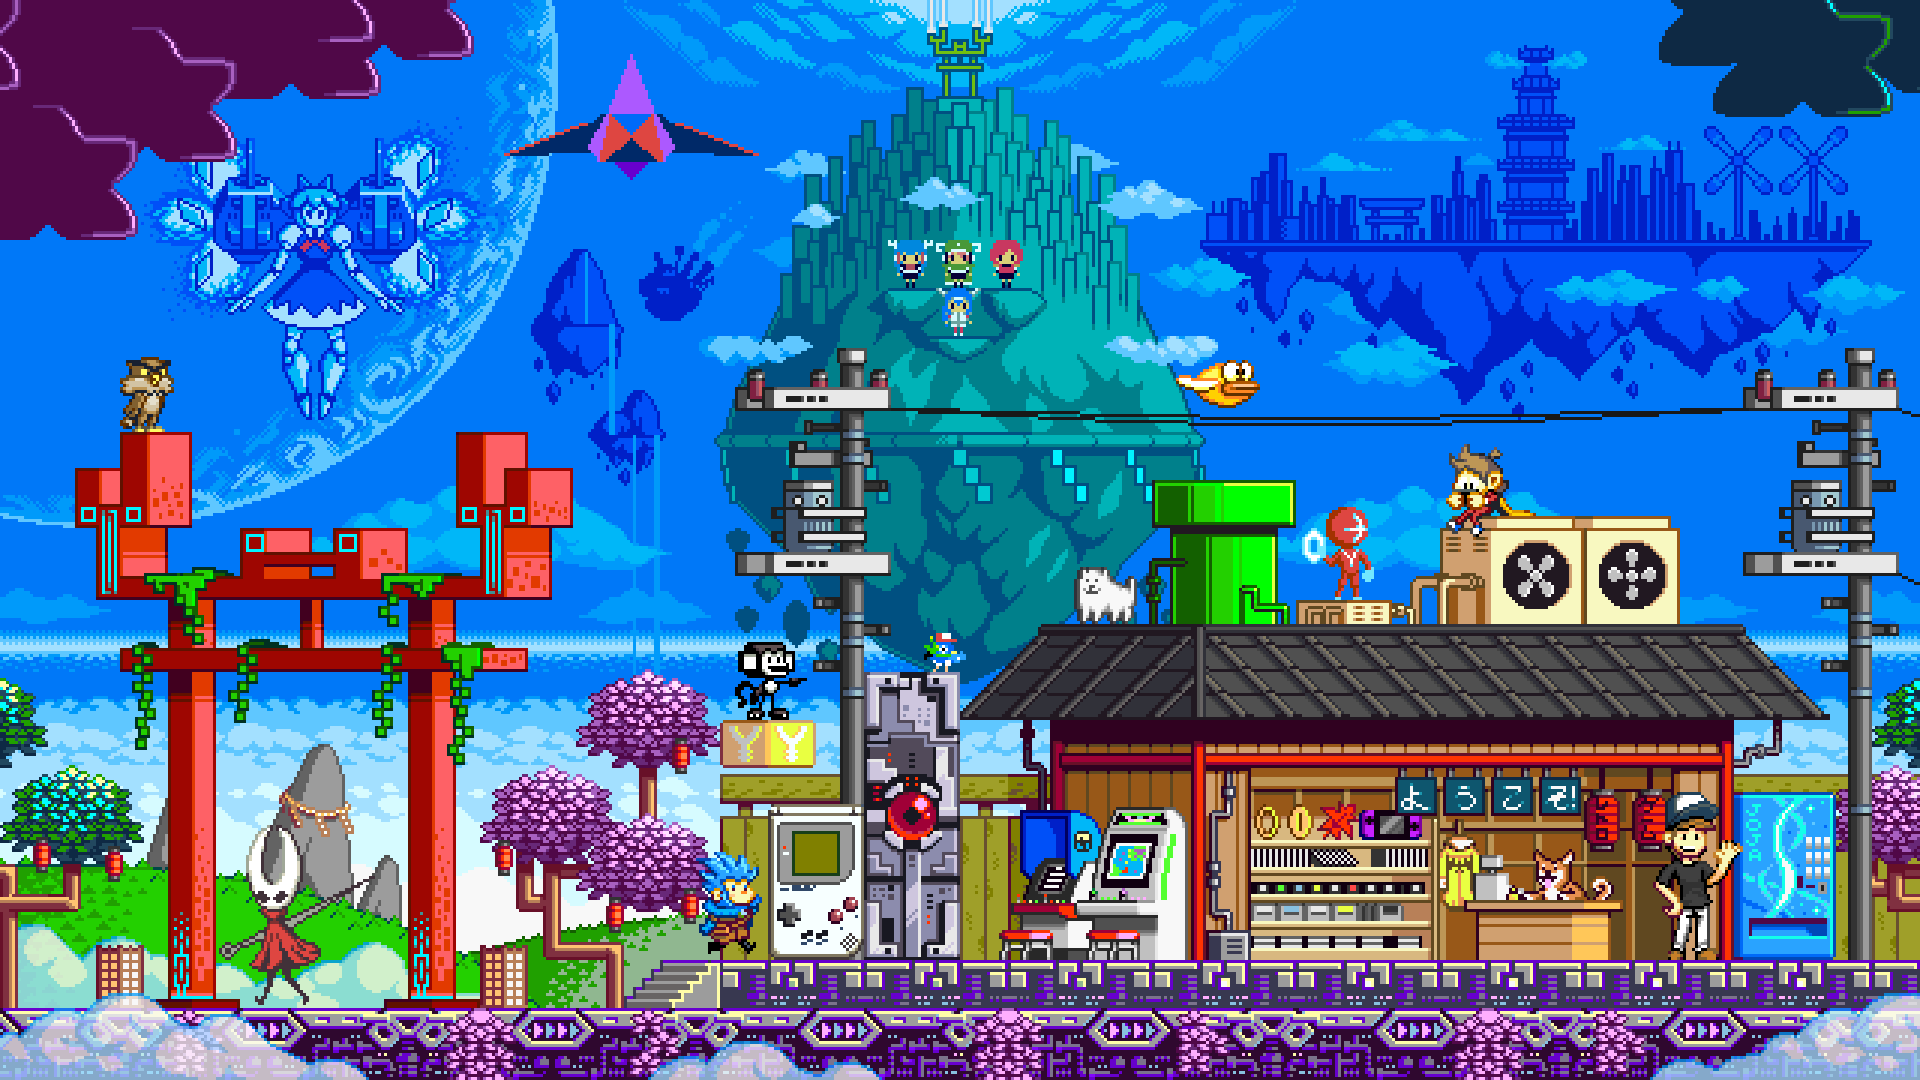 Indie game characters hanging out